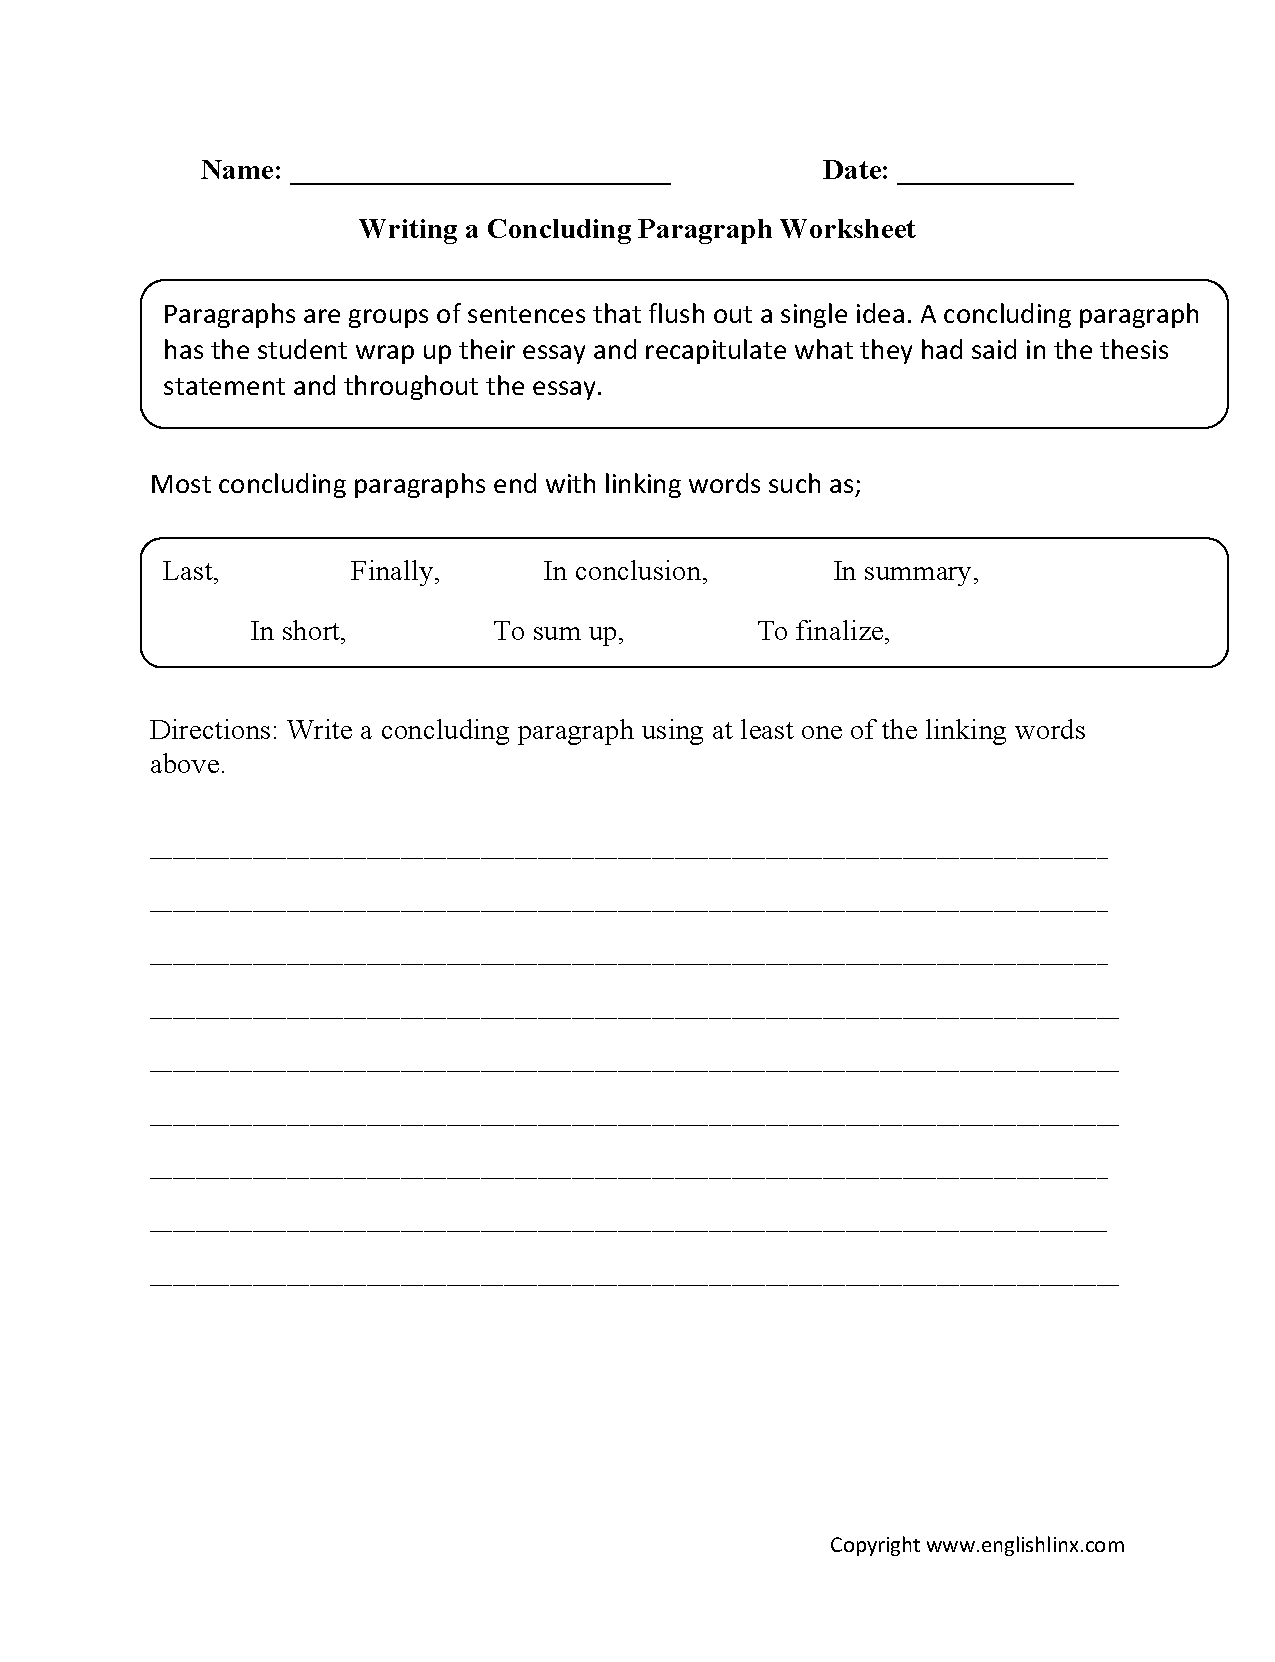 Worksheets Writing Paragraphs Worksheet writing concluding paragraph worksheets eng pinterest worksheets